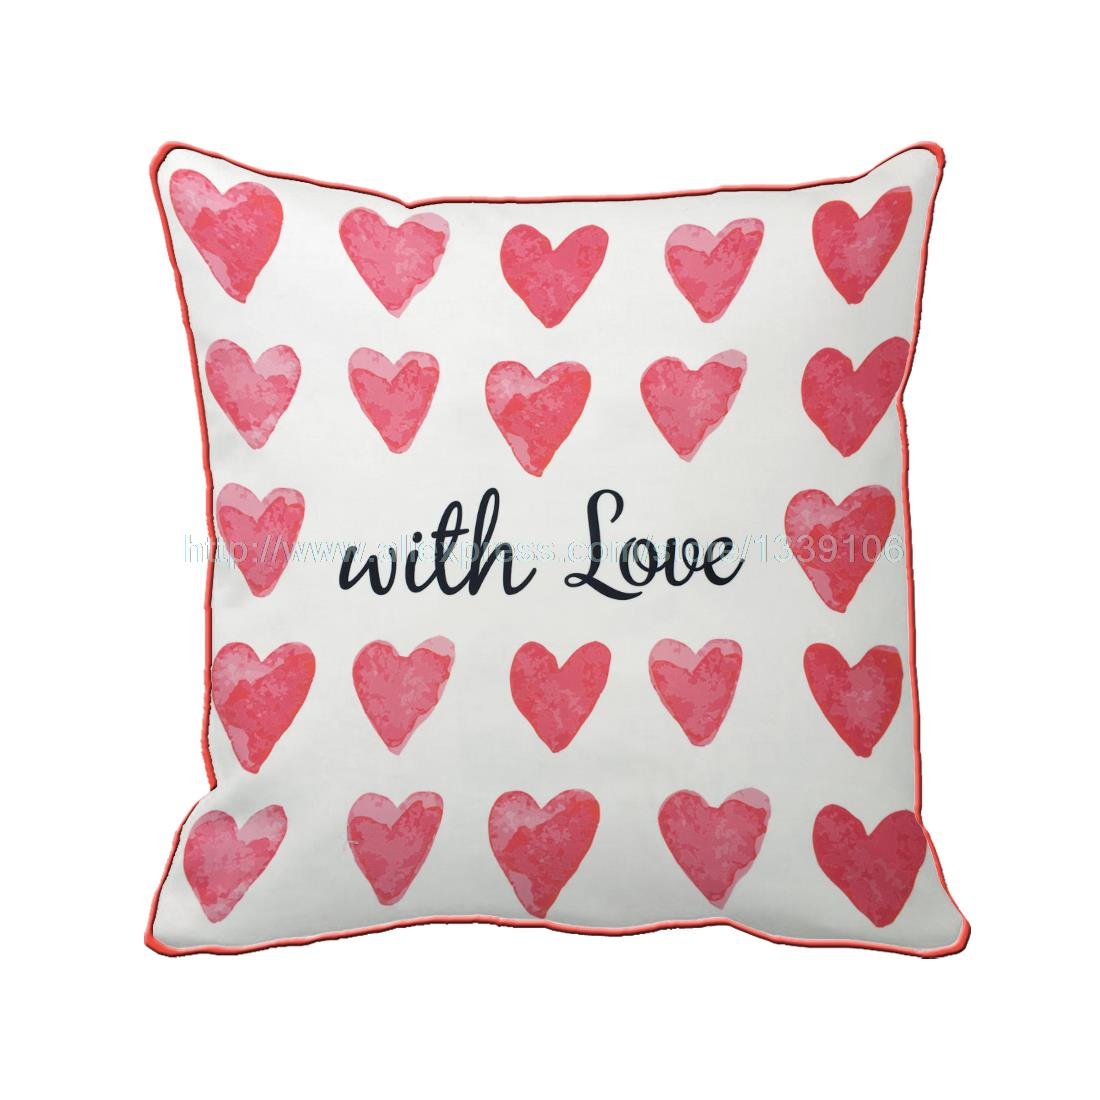 With Love Full Hearts Valentines Custom Gift Cushion For Sofa Chair Home Decor Accent Throw Pillow Decorative Pillows Coussin